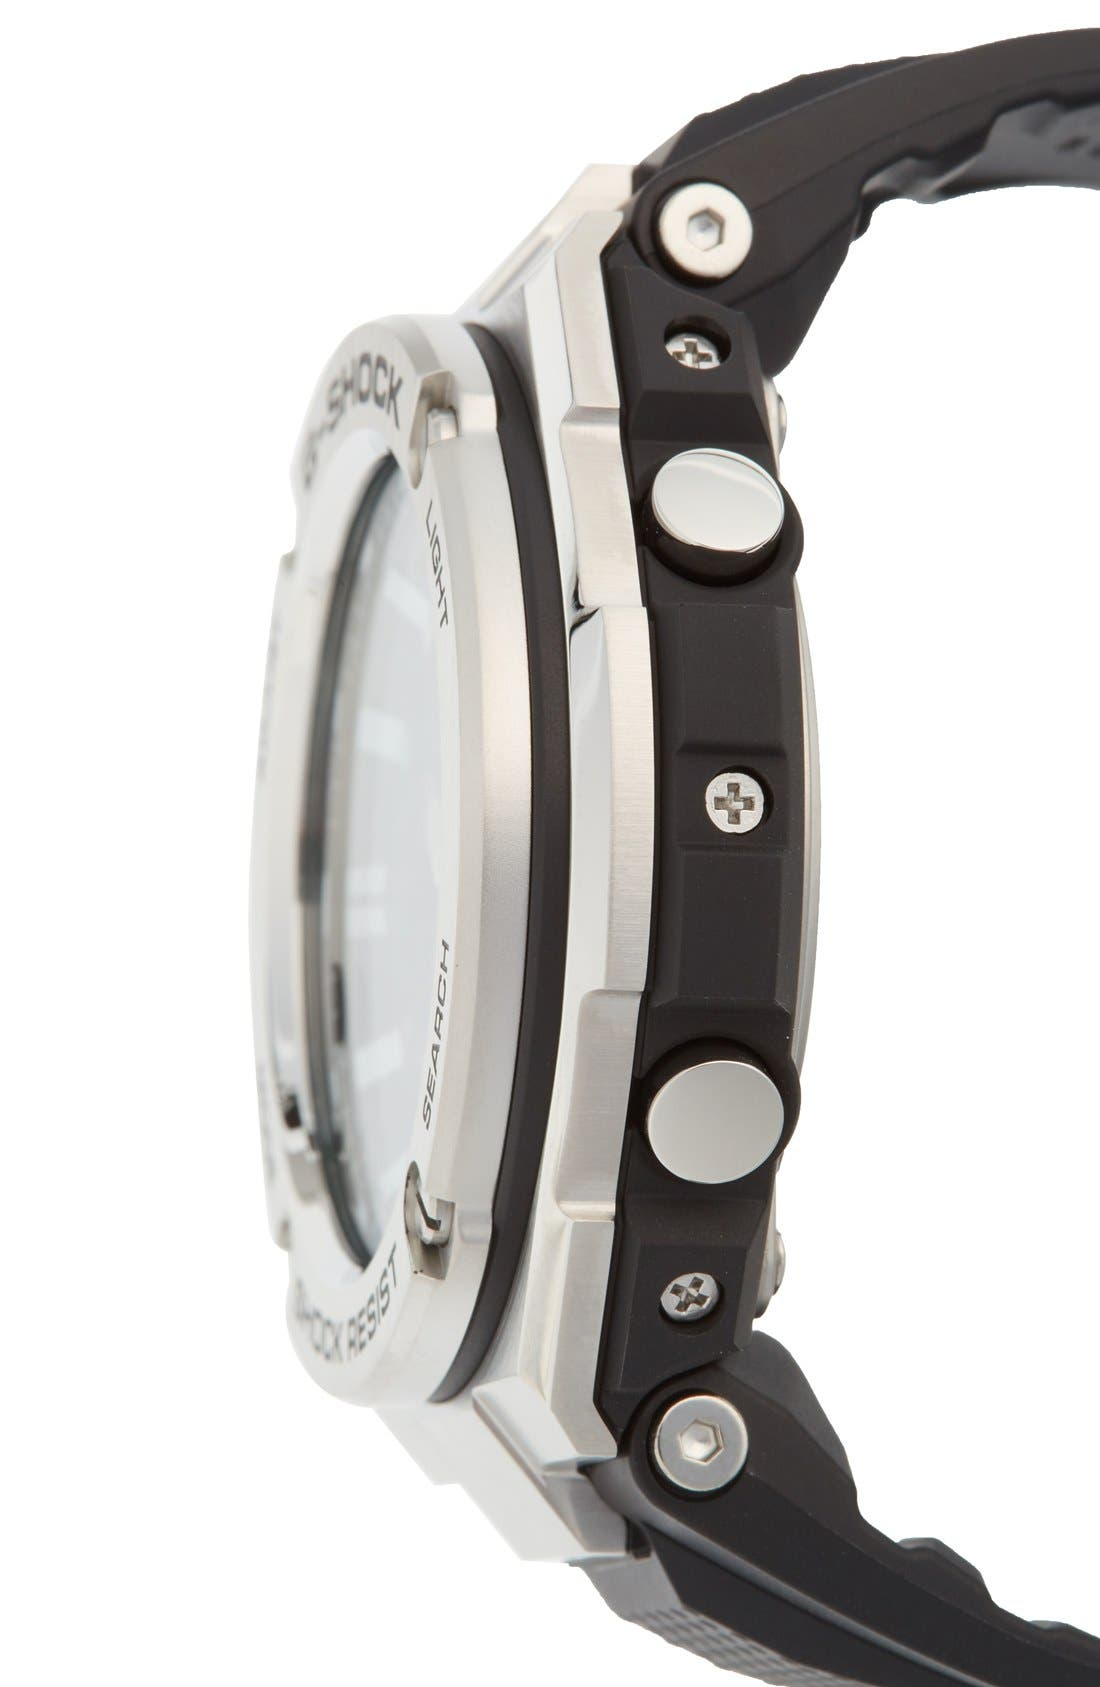 Alternate Image 3  - G-Shock 'G-Steel' Ana-Digi Resin Strap Watch, 59mm x 52mm